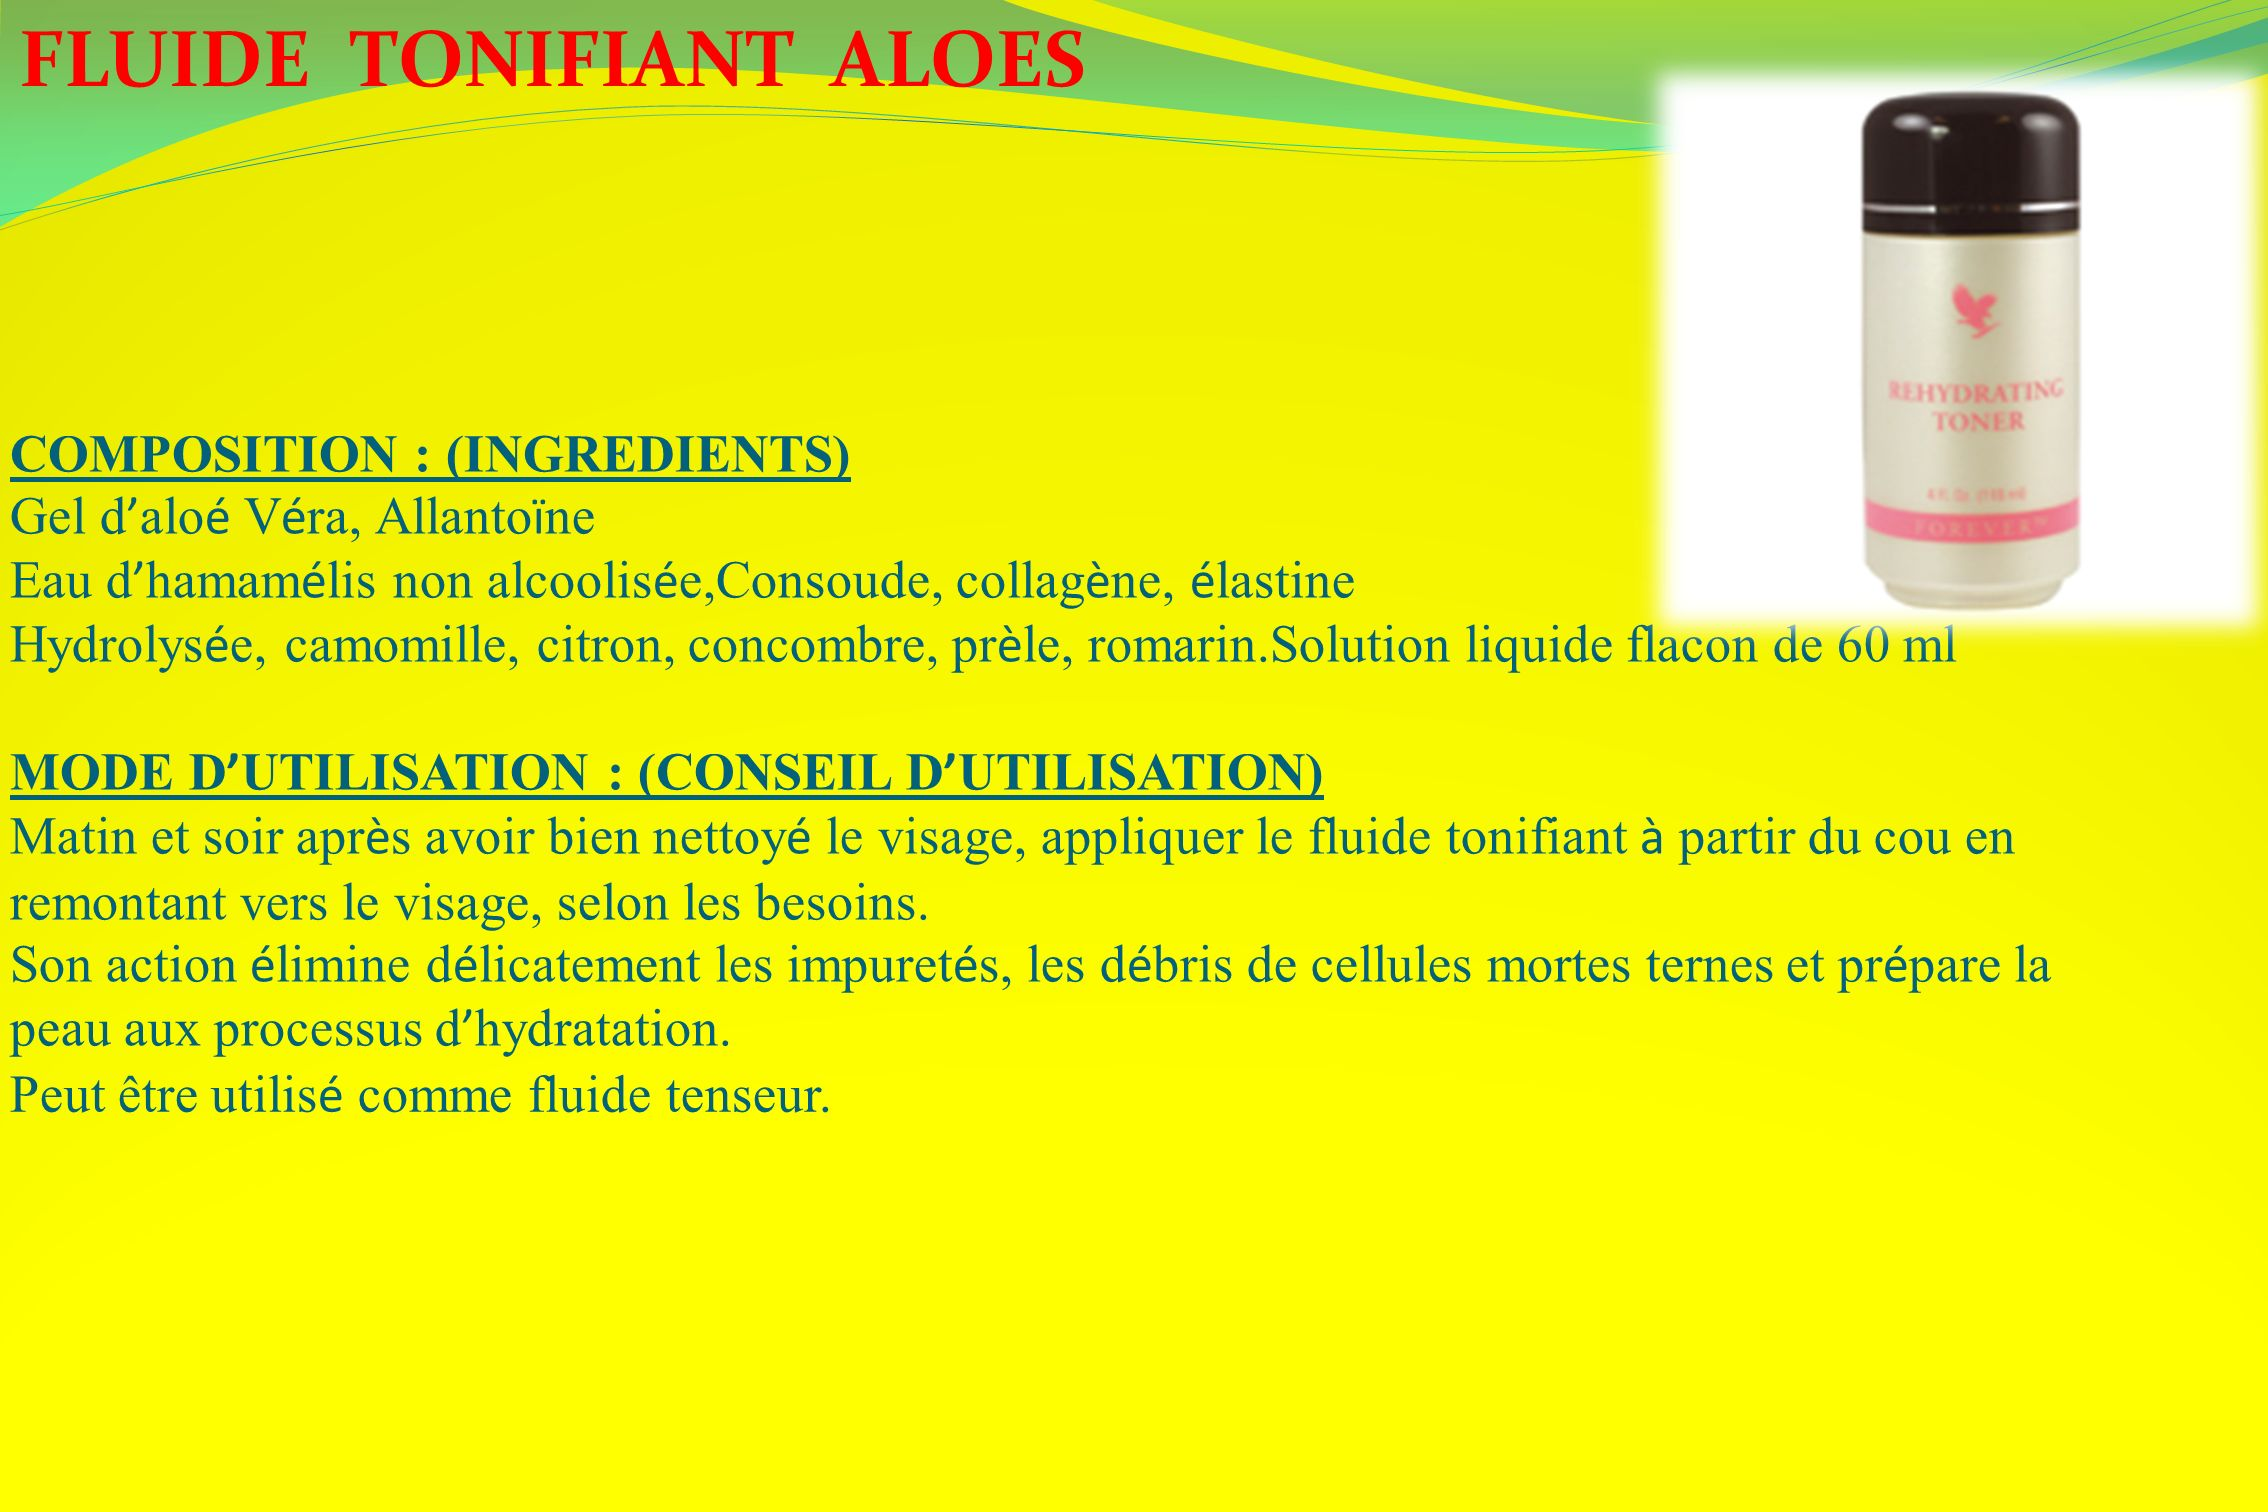 FLUIDE TONIFIANT ALOES